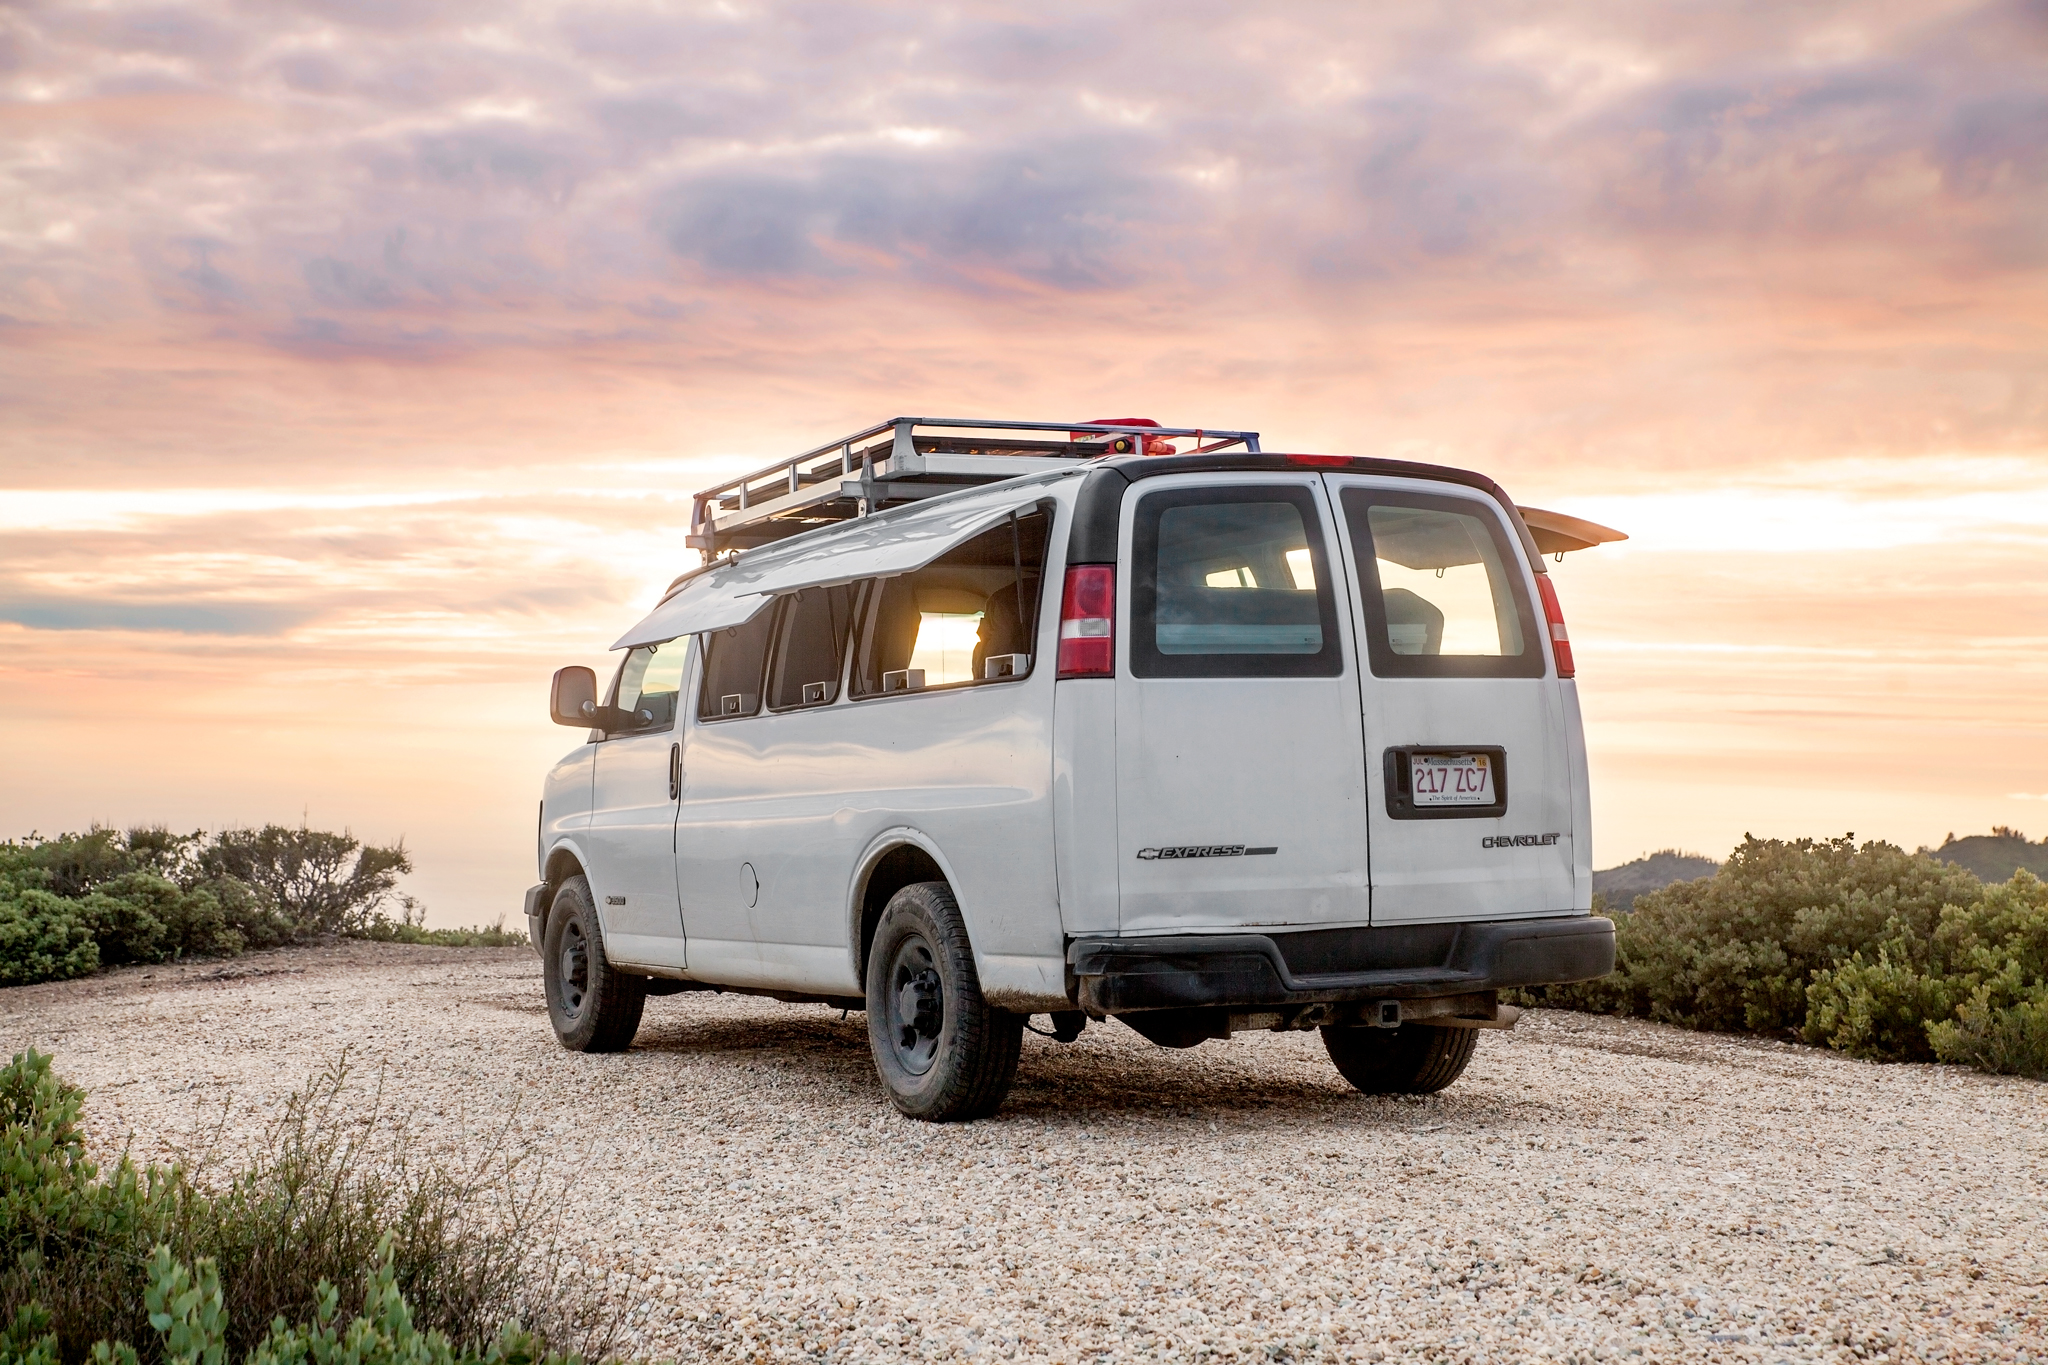 7 Vans Converted into Tiny Homes on Wheels | Make: Cargo Van Tiny Home Plans on 200 sf home plans, v-shaped home plans, classic home plans, three story home plans, warehouse home plans, home container house plans, engineering home plans, security home plans, handicap home plans, one-bedroom cottage home plans, survival home plans, american dream home plans, isbu home plans, sears home plans, gooseneck home plans, multi family home plans, bad home plans, new country home plans, 5 bed home plans, trailer home plans,